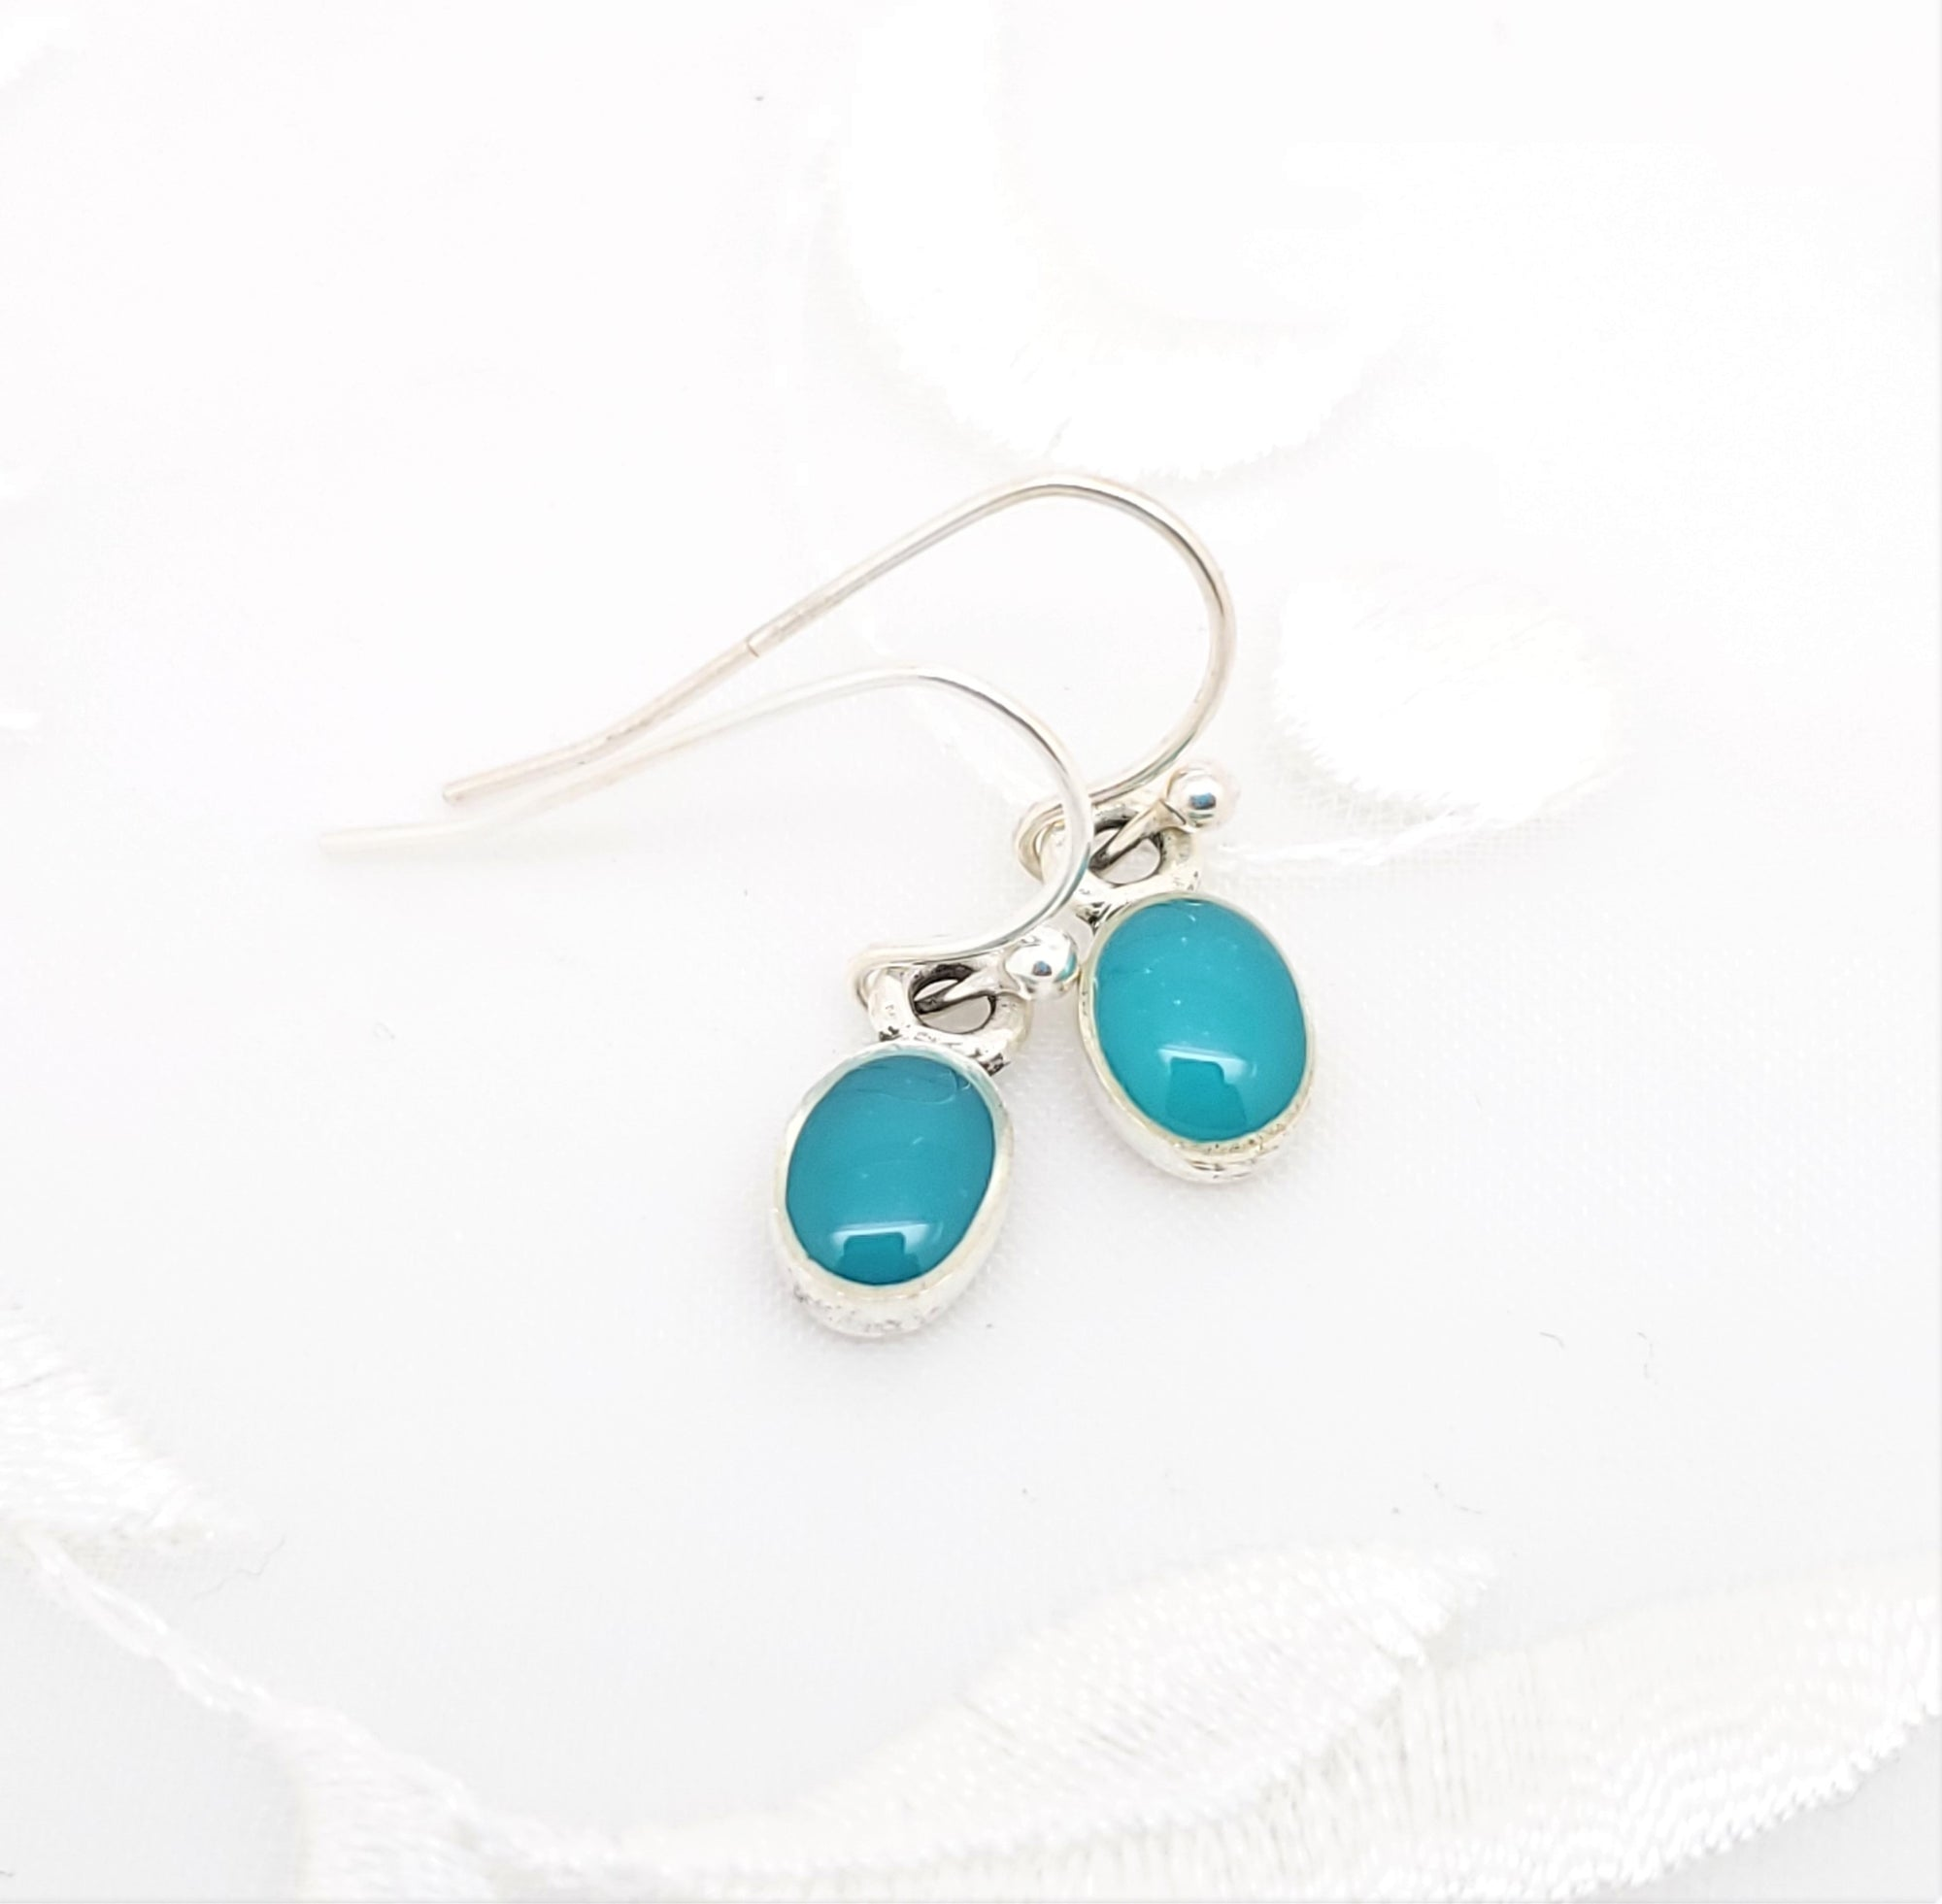 Antique Silver Tiny Oval Earrings with Turquoise Blue Resin